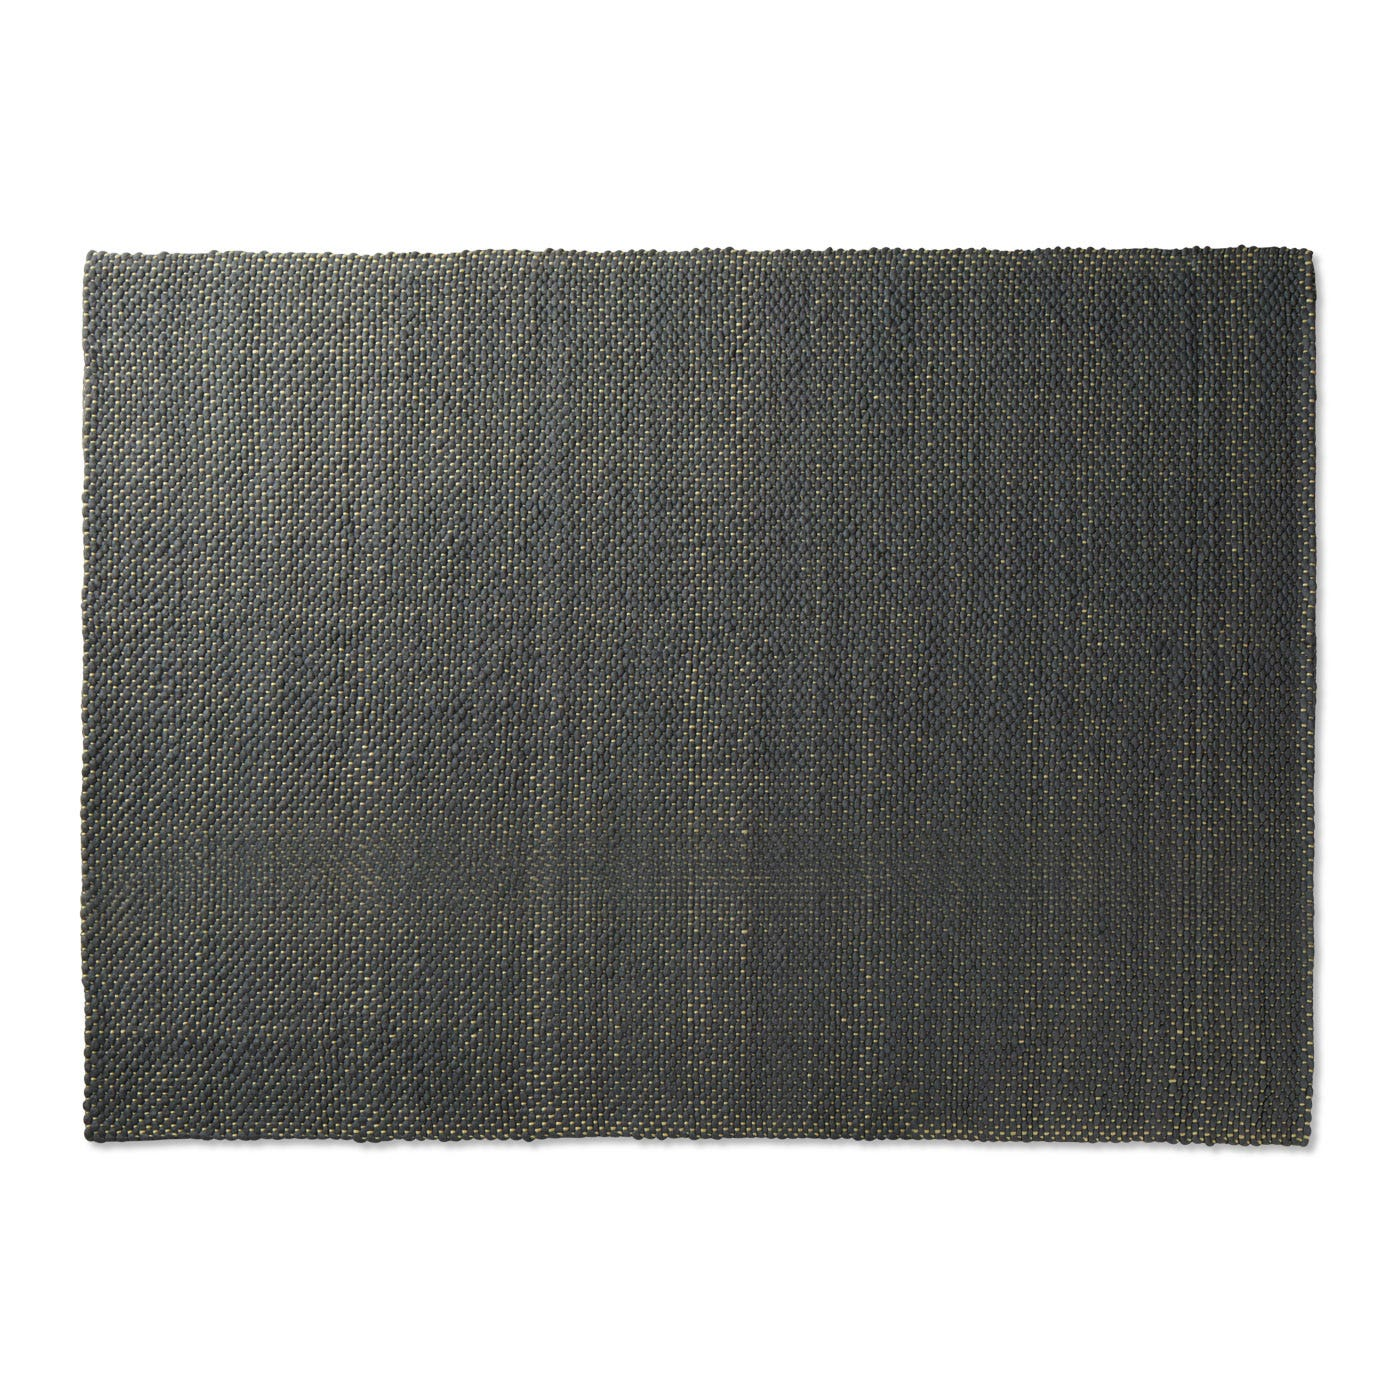 previous image dash 9u0027 x 12u0027 rug slate